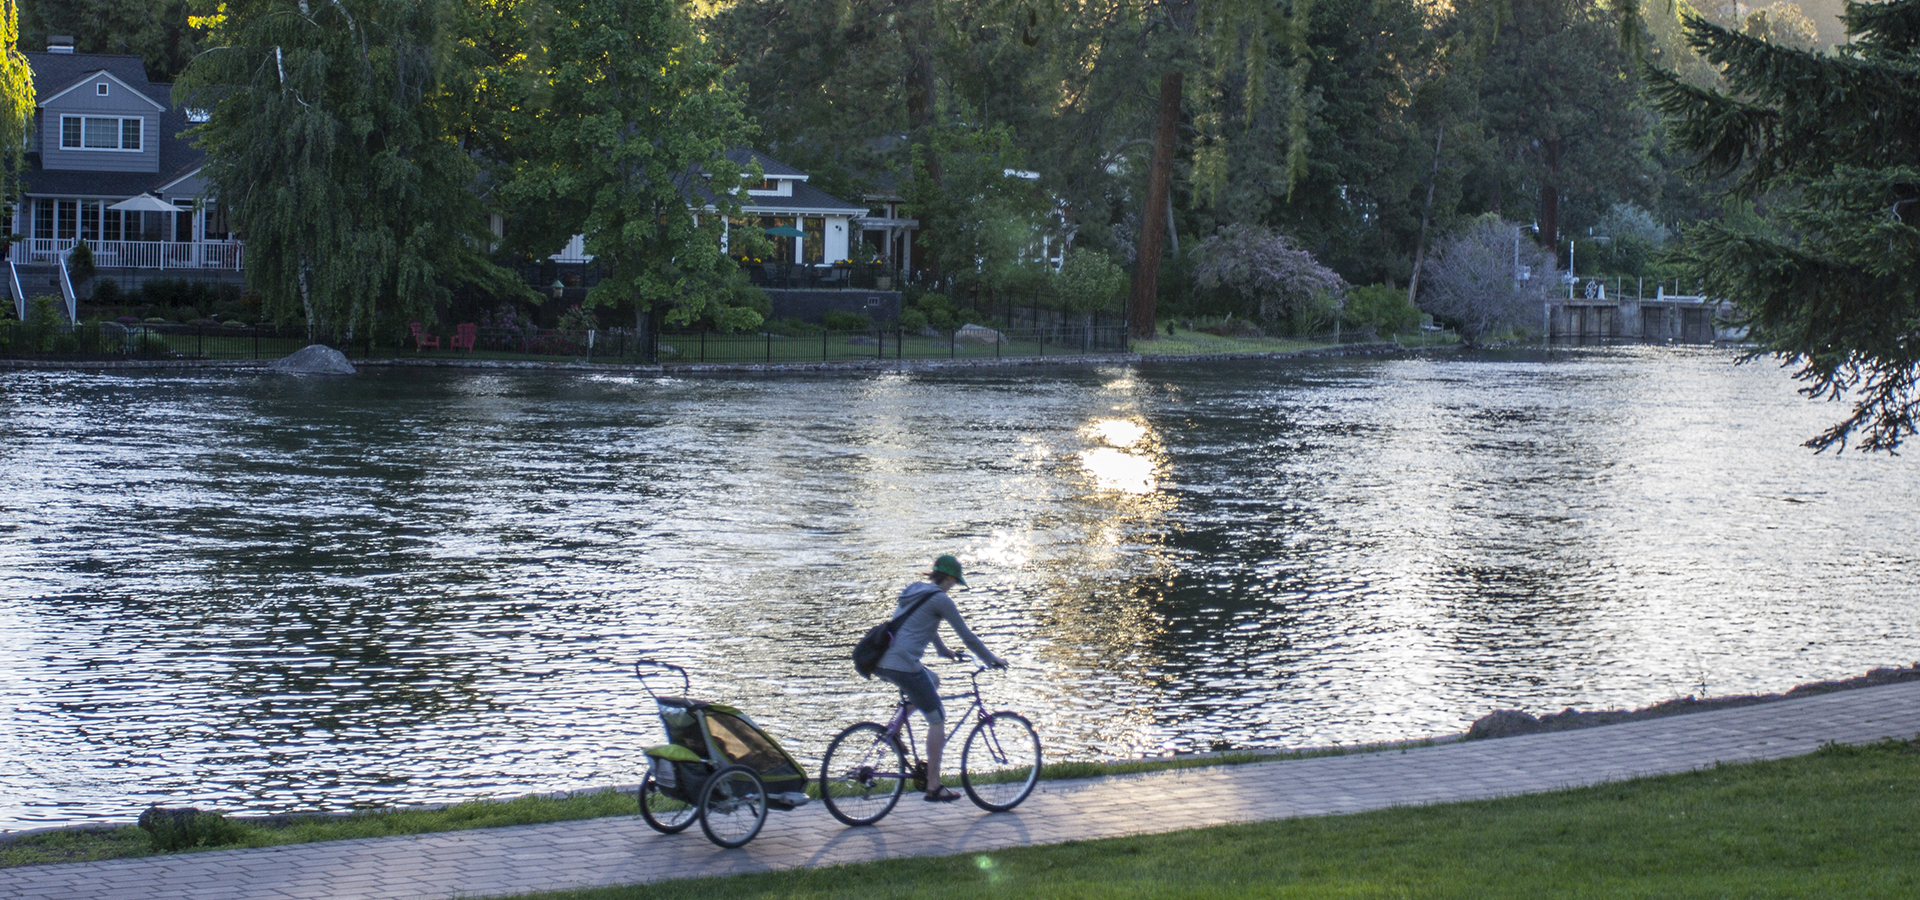 Deschutes River Trail at Pioneer Park with cyclist